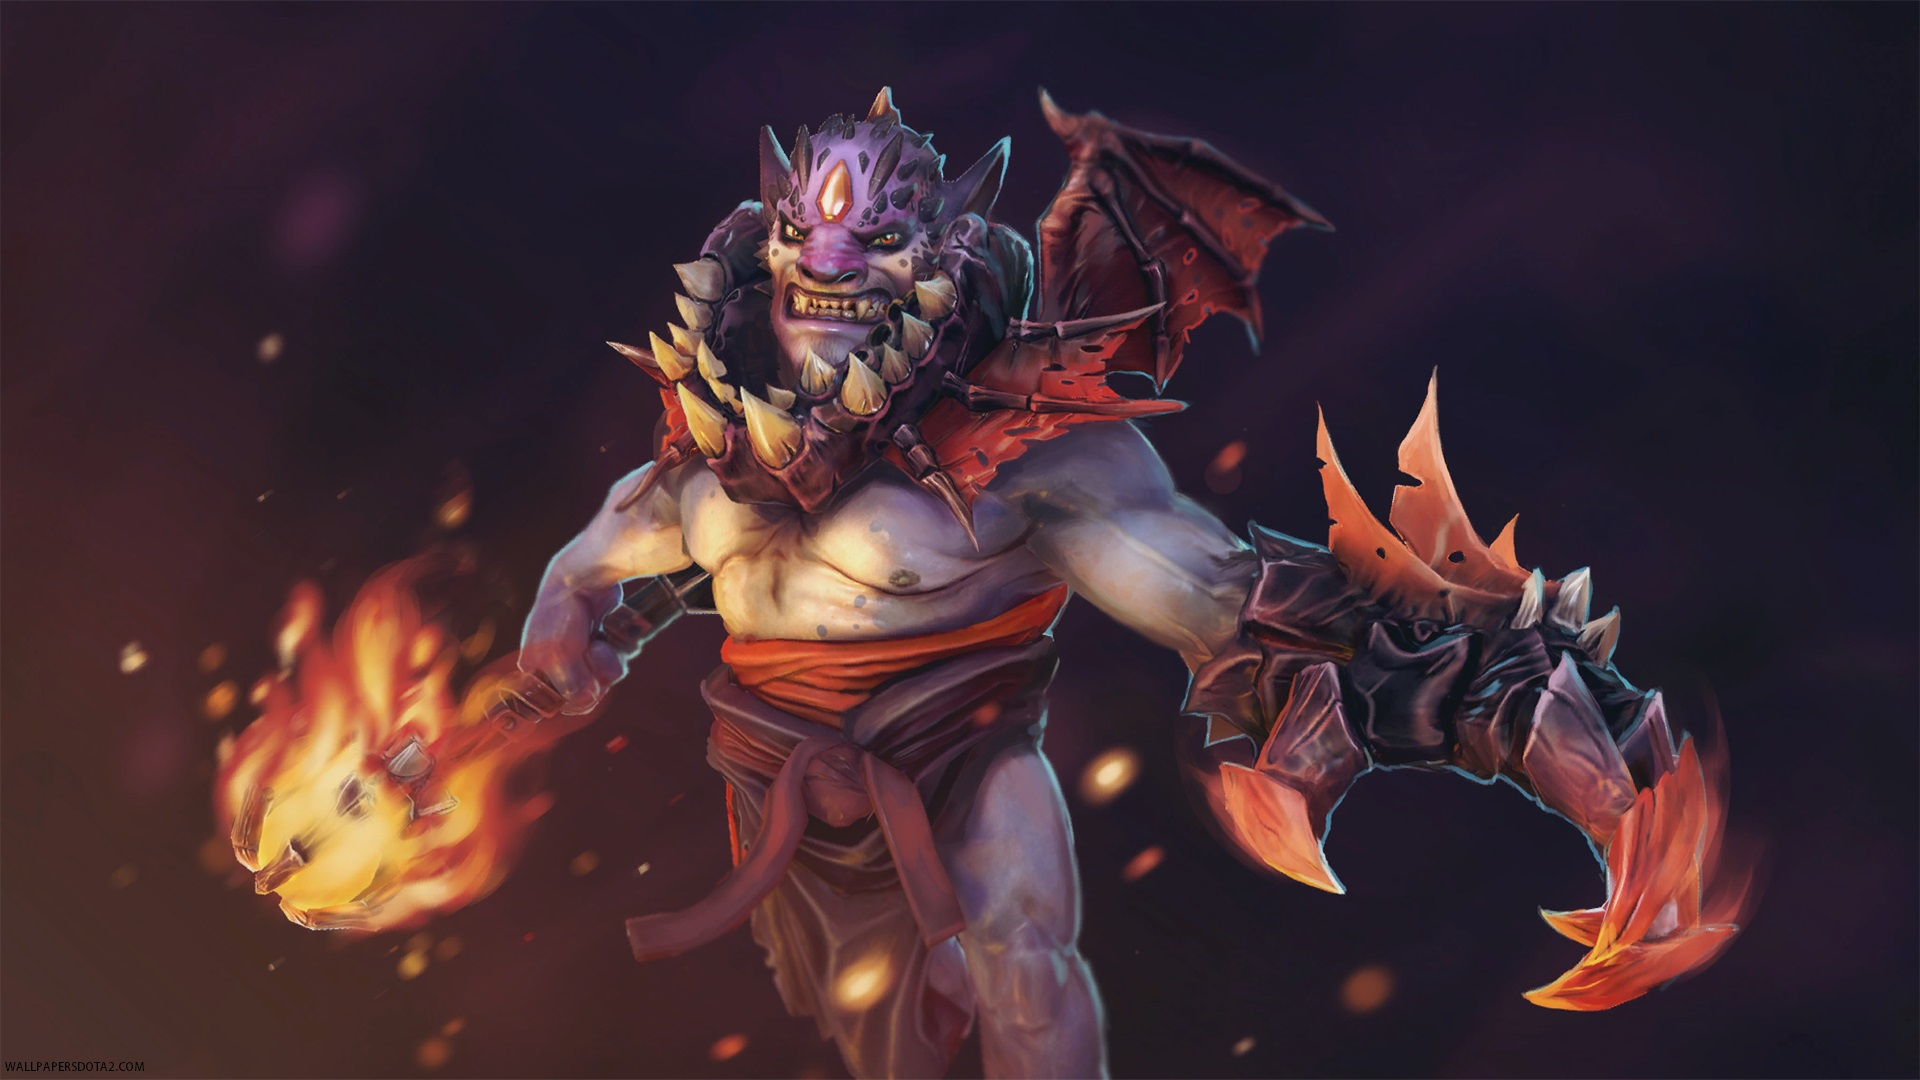 Lion Legacy of Infernal Wings Dota 2 wallpaper computer desktop